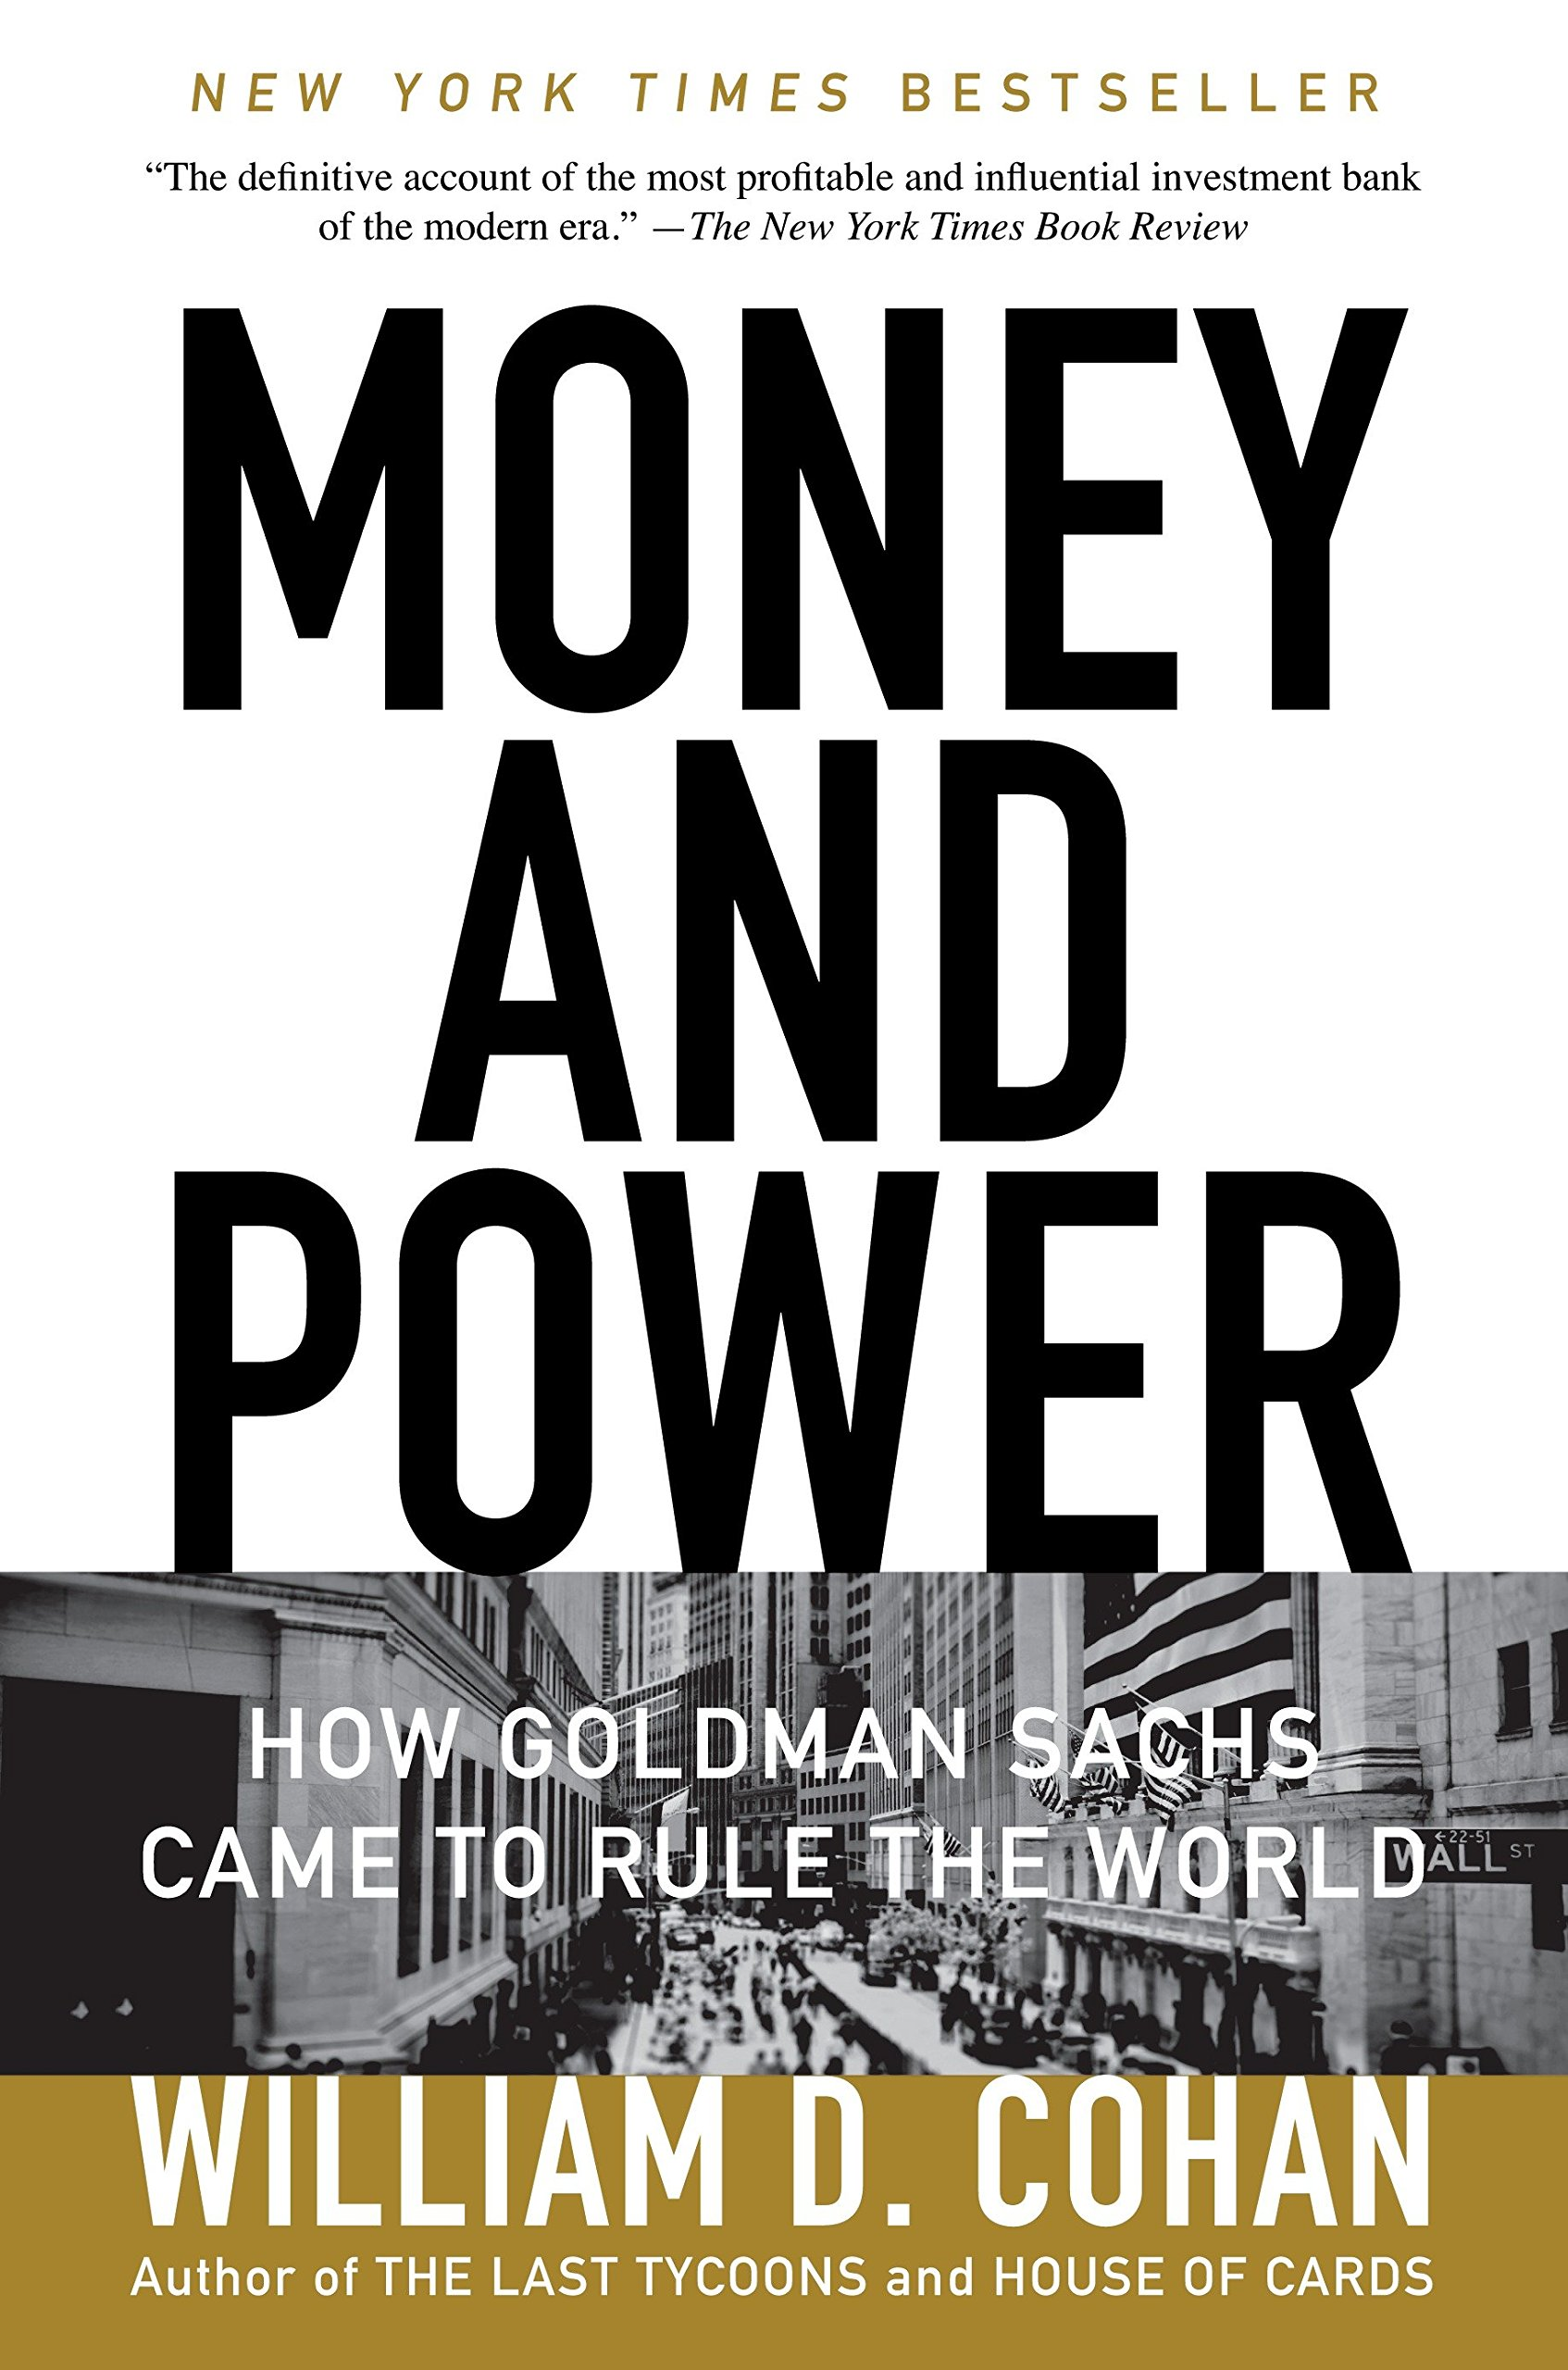 Image result for power and money